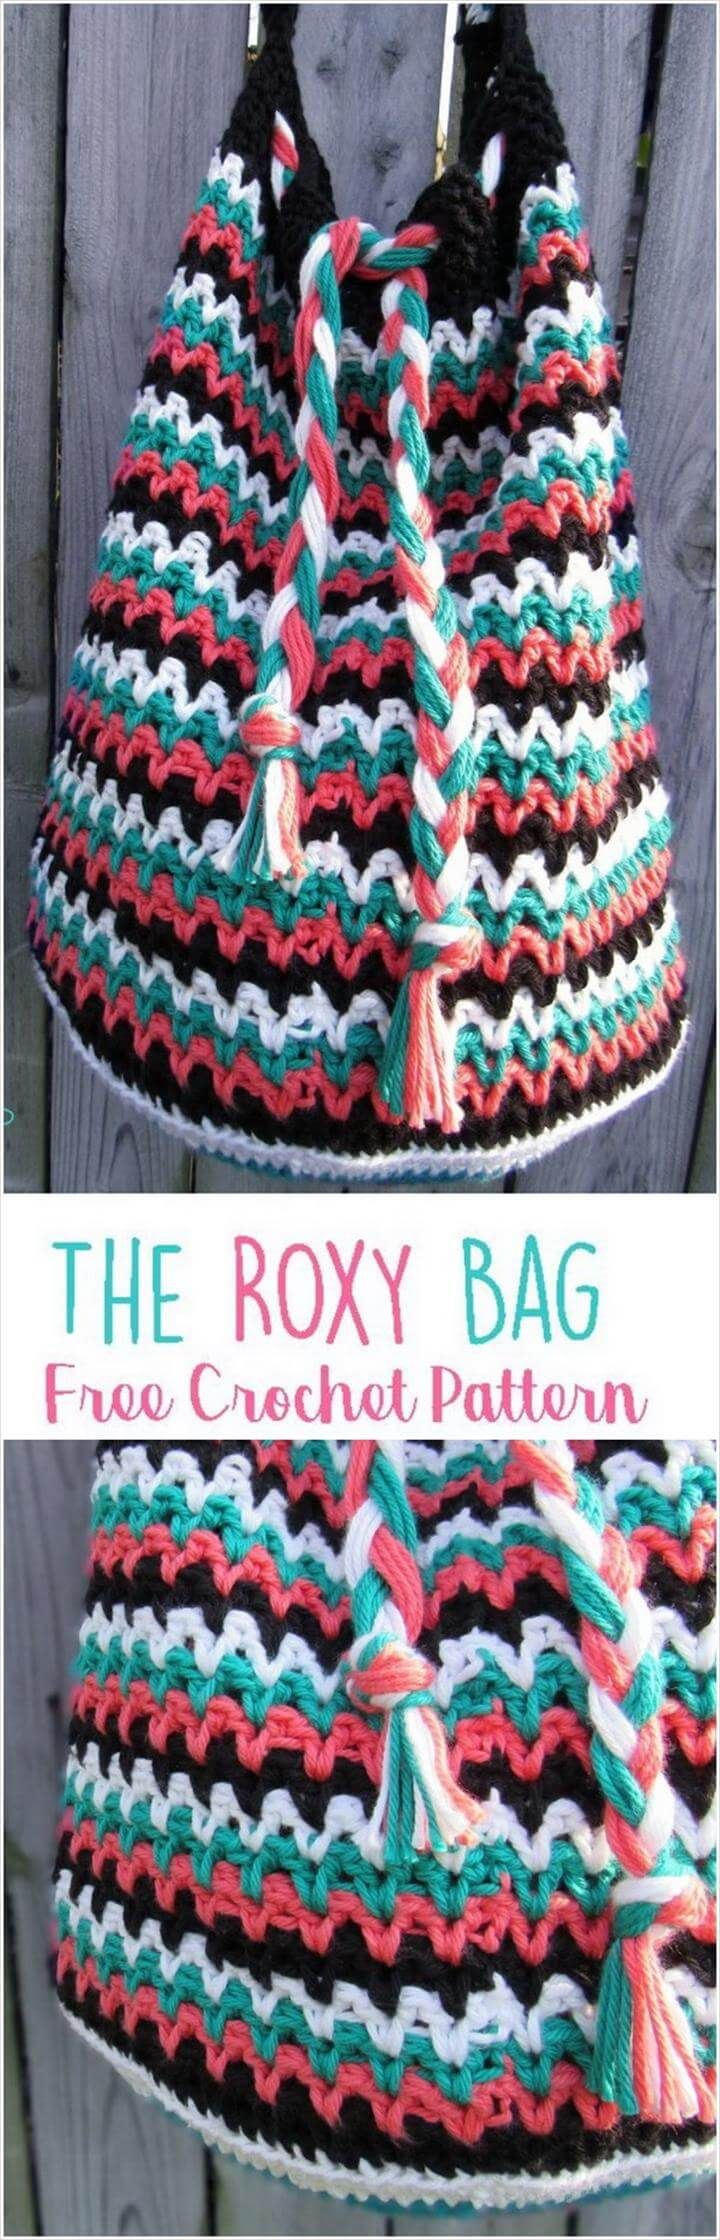 Crochet Roxy Bag